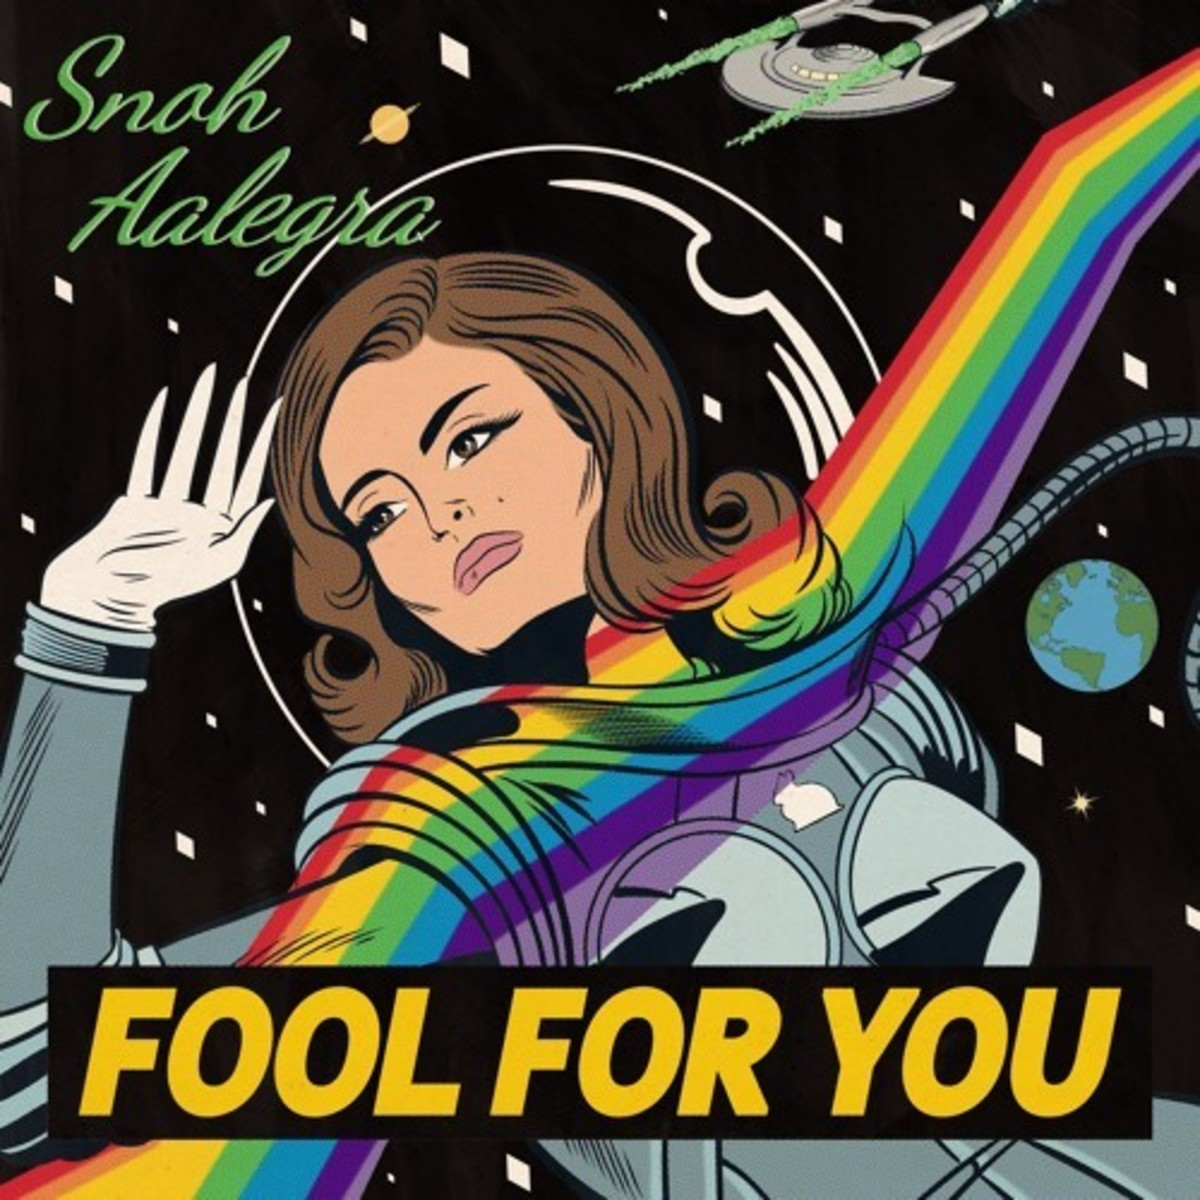 snoh-aalegra-fool-for-you.jpg